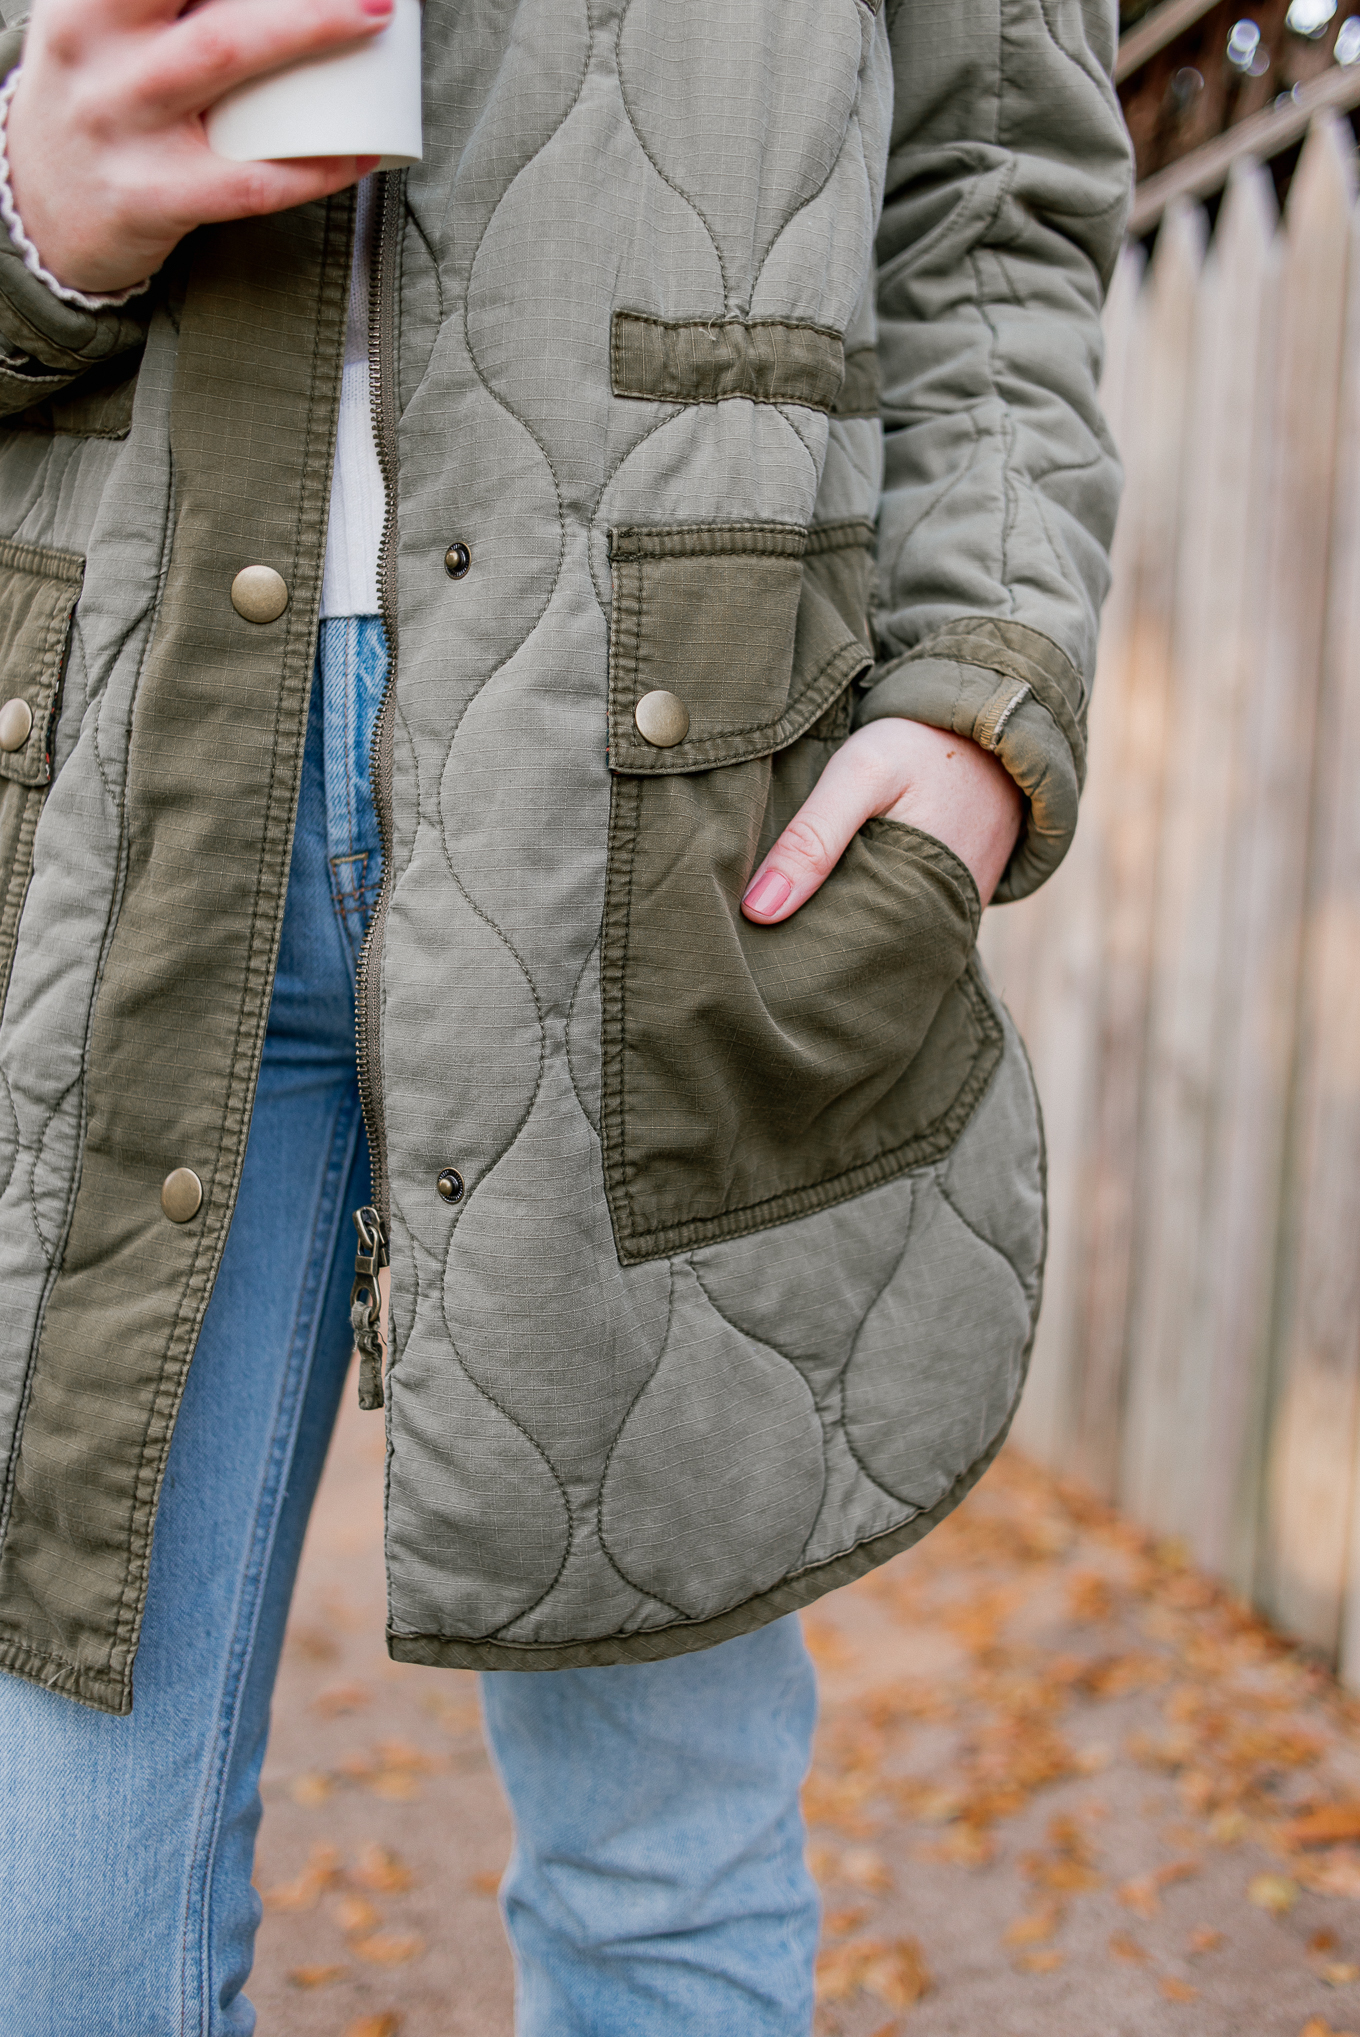 Laura Leigh of Louella Reese styles a quilted field jacket for a casual winter outfit